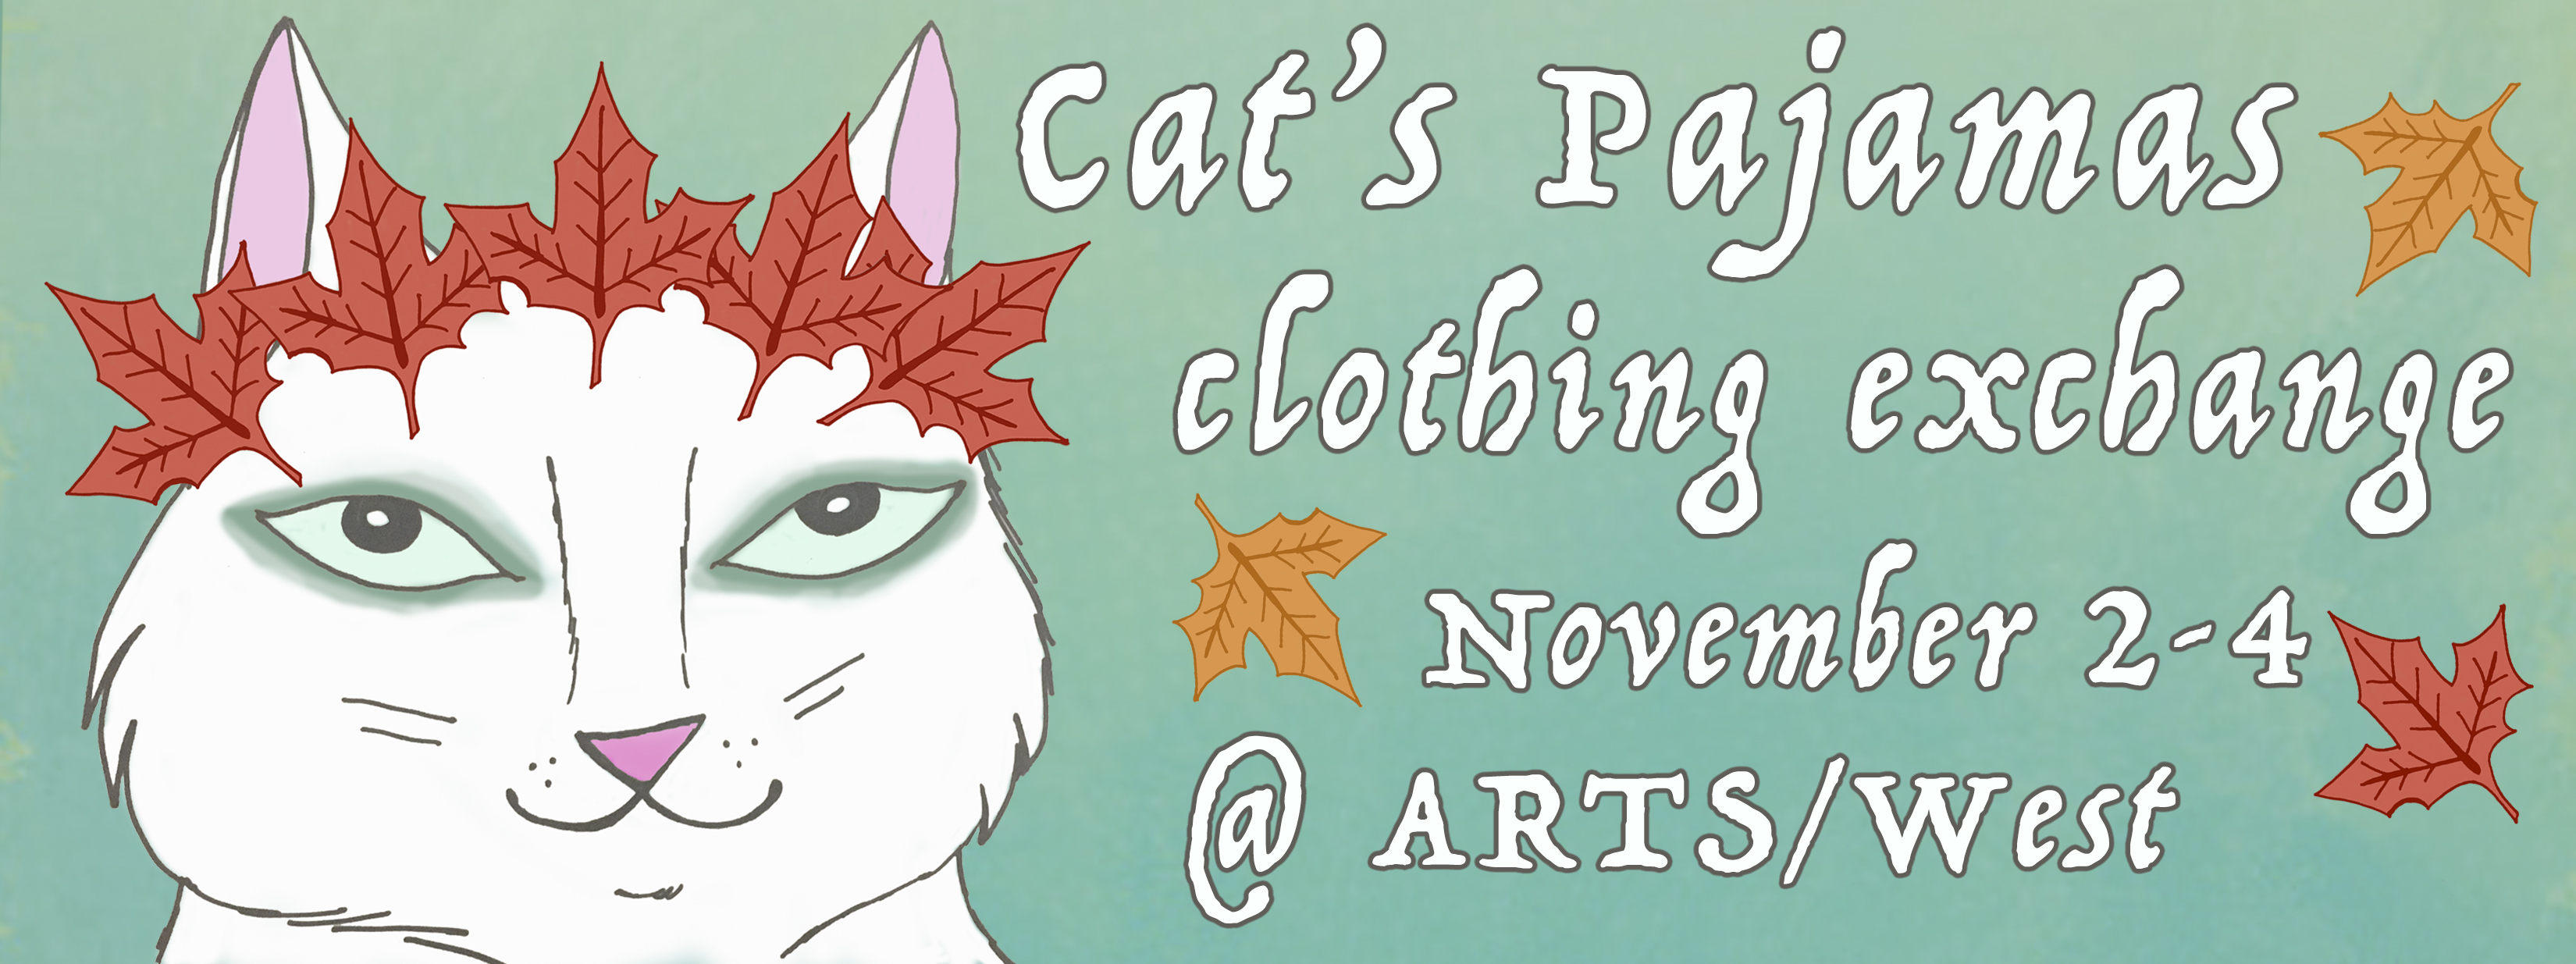 a7f7f264c8 Cat s Pajamas Clothing Exchange Fundraiser for ARTS West - WOUB ...